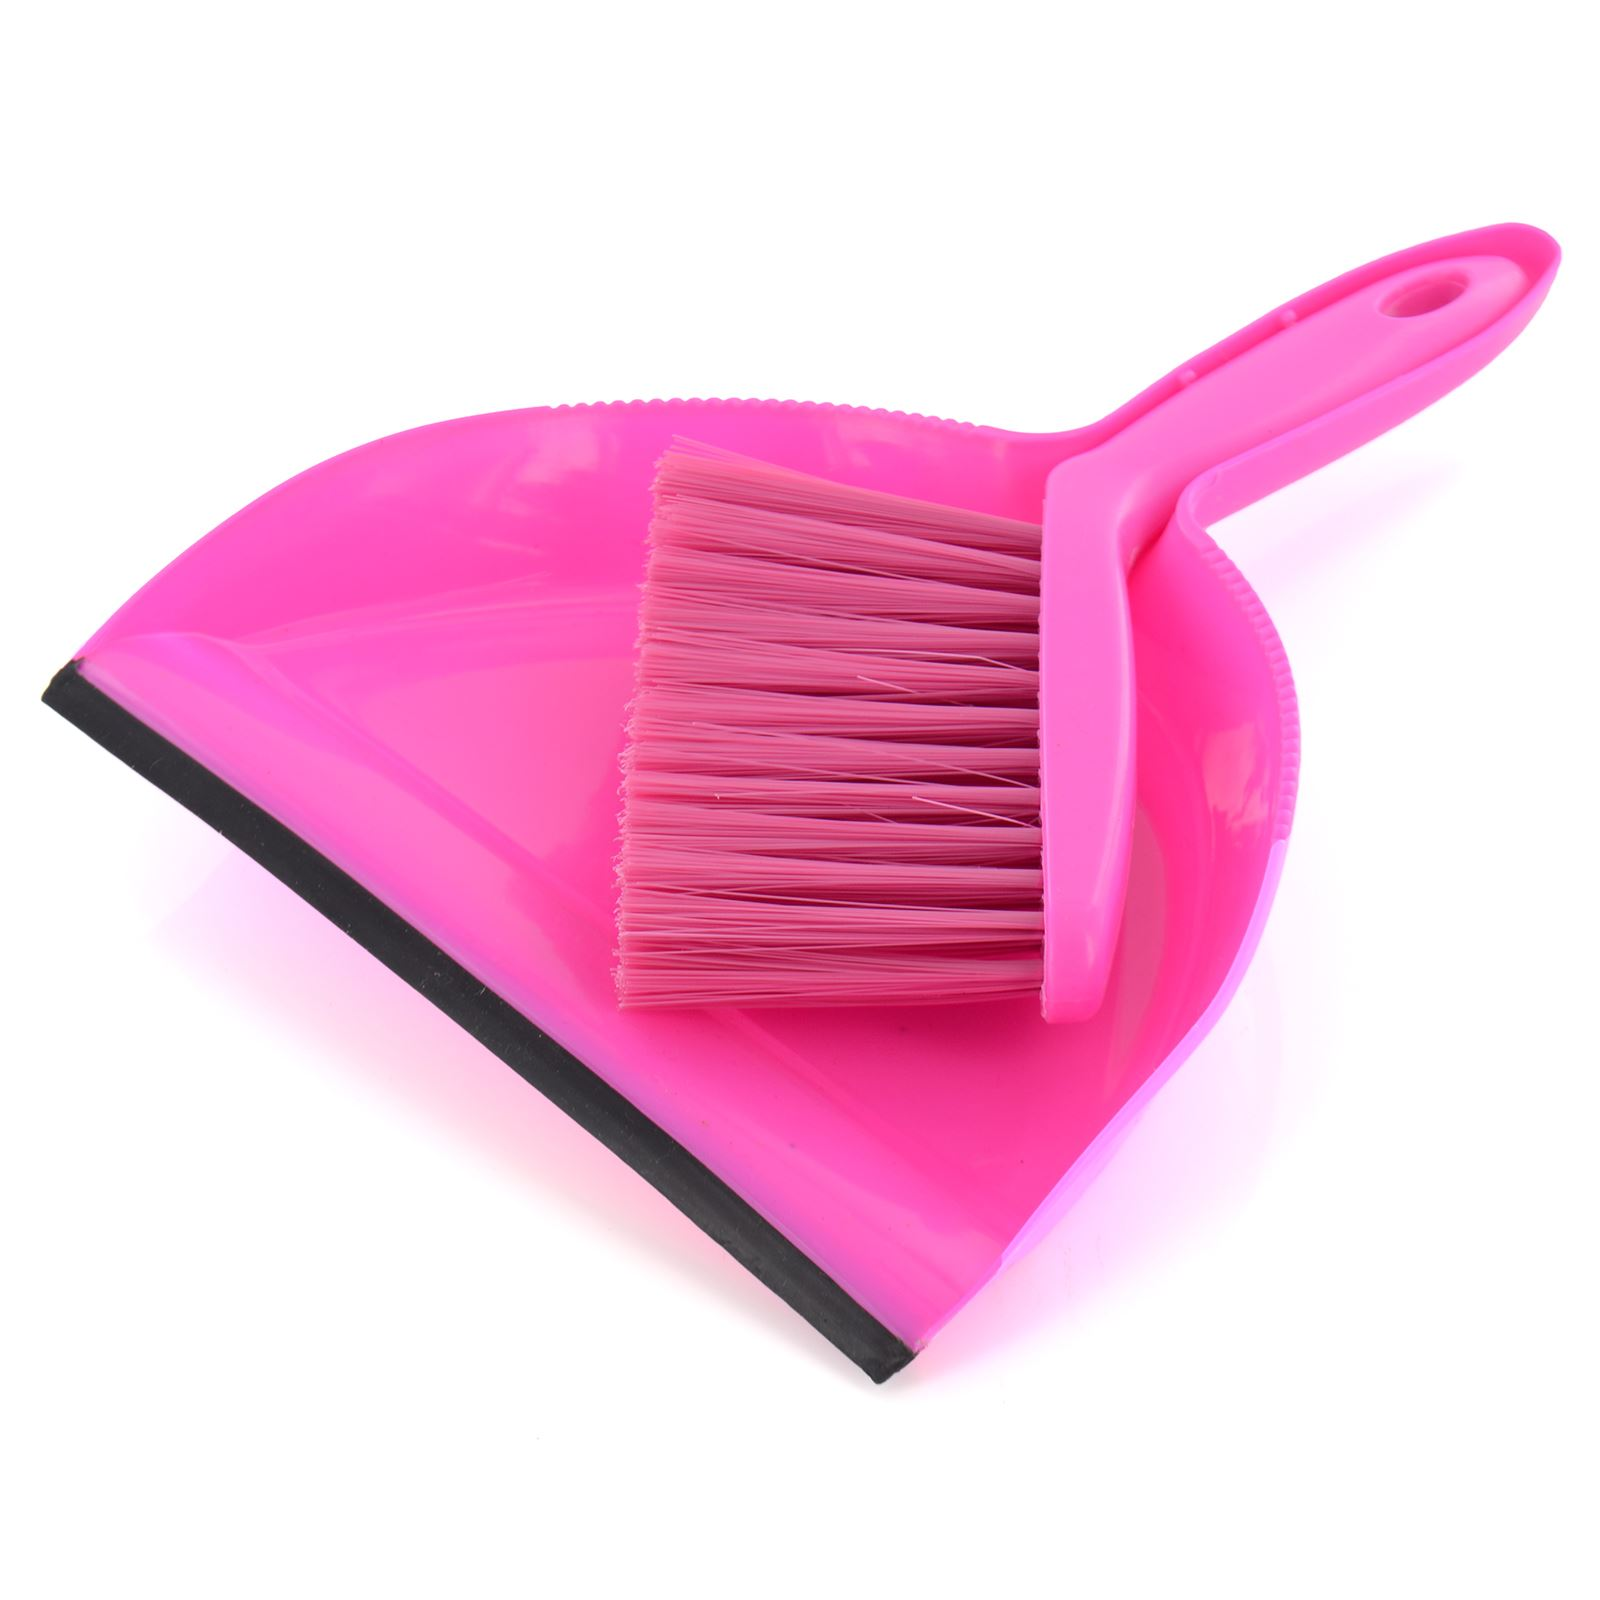 Hand cleaning brush - Mini Plastic Dustpan And Brush Set Soft Cleaning